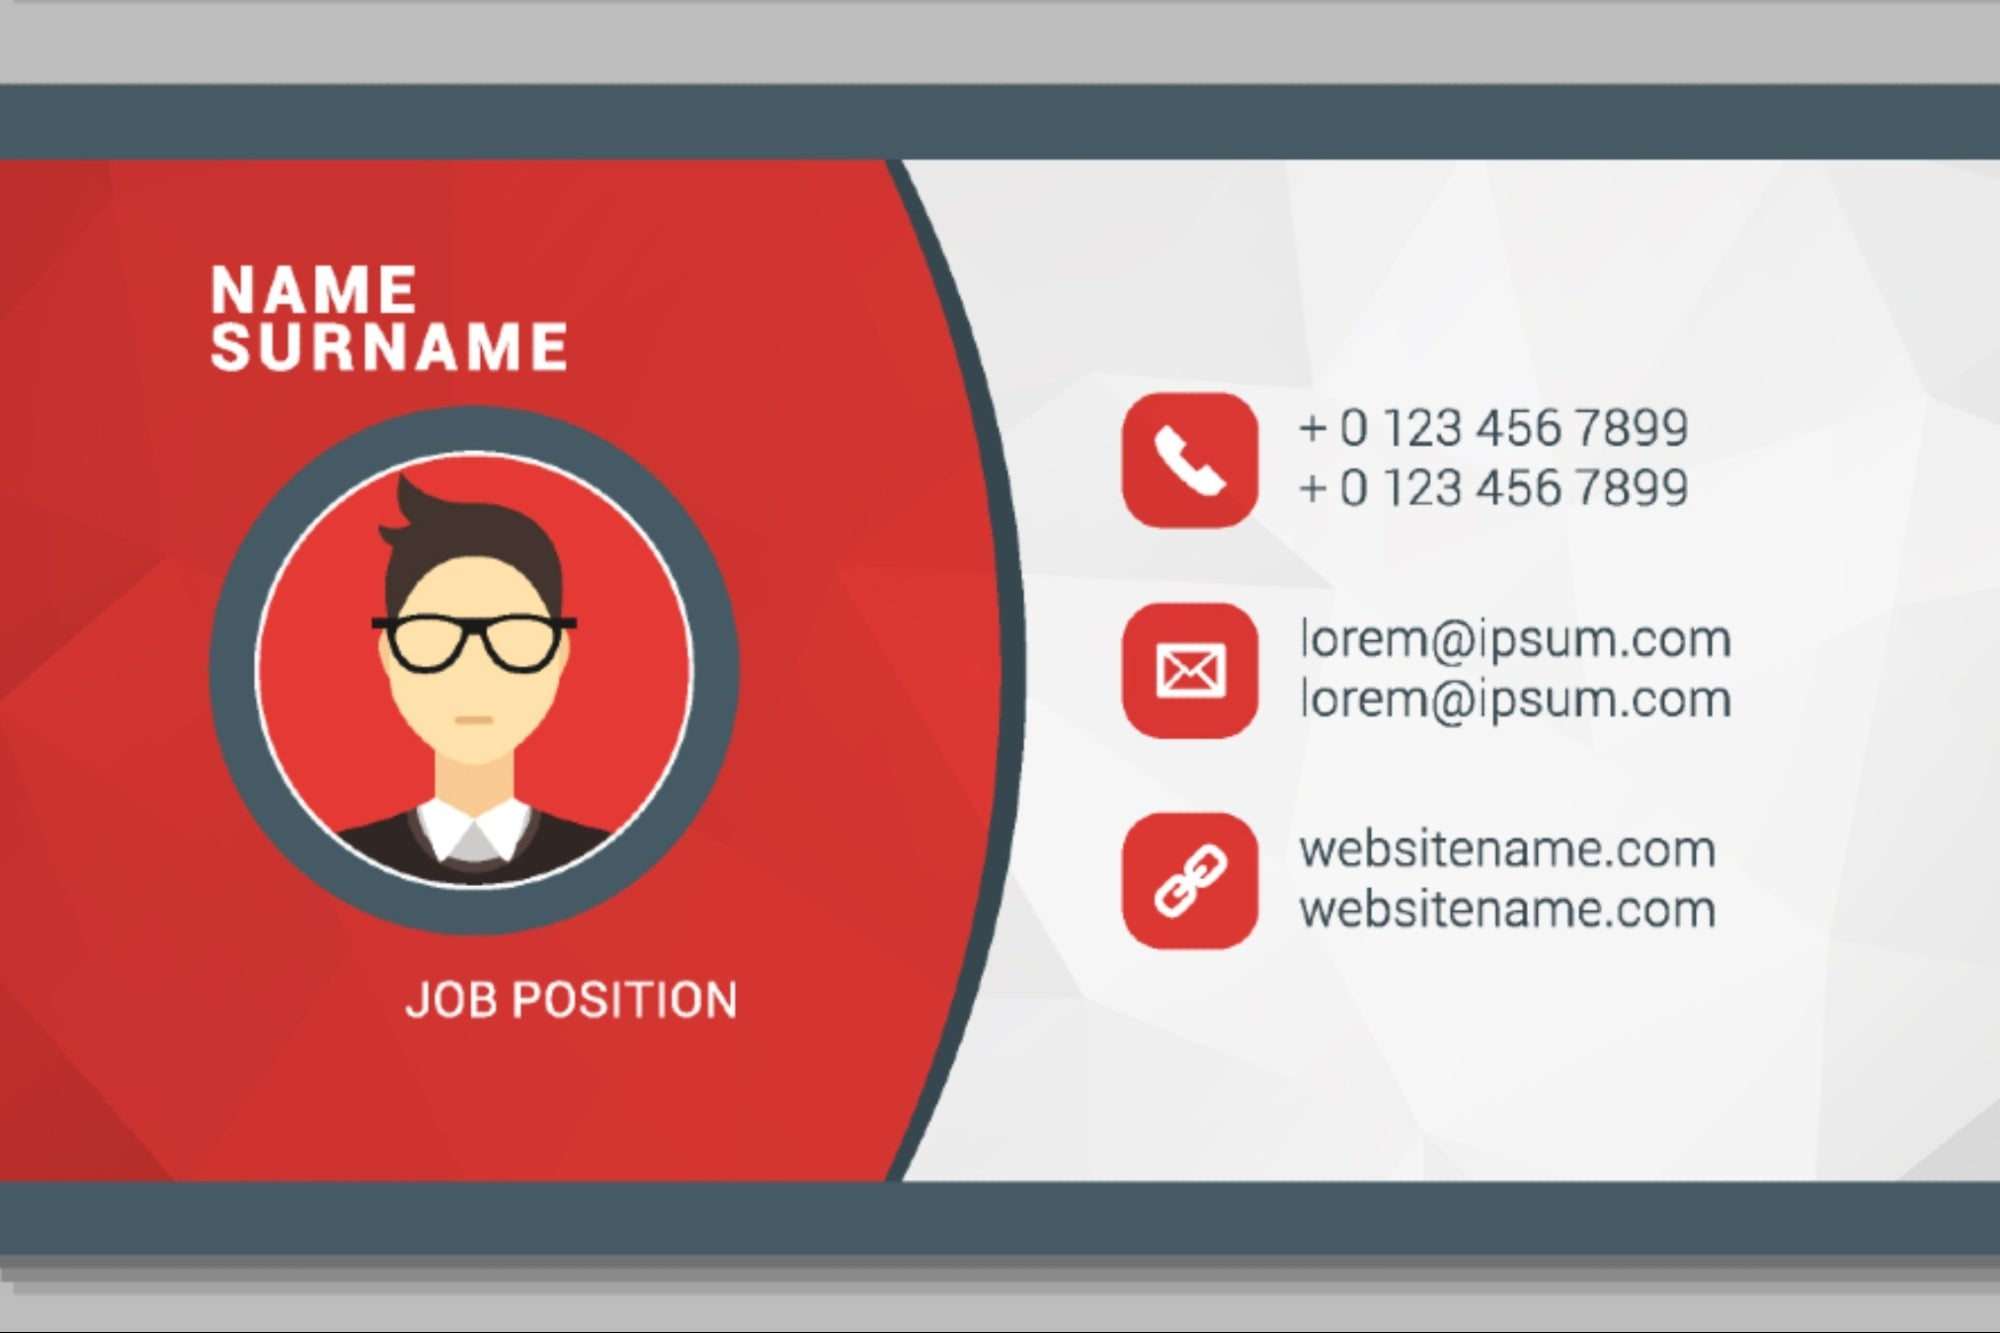 How to design your business cards?